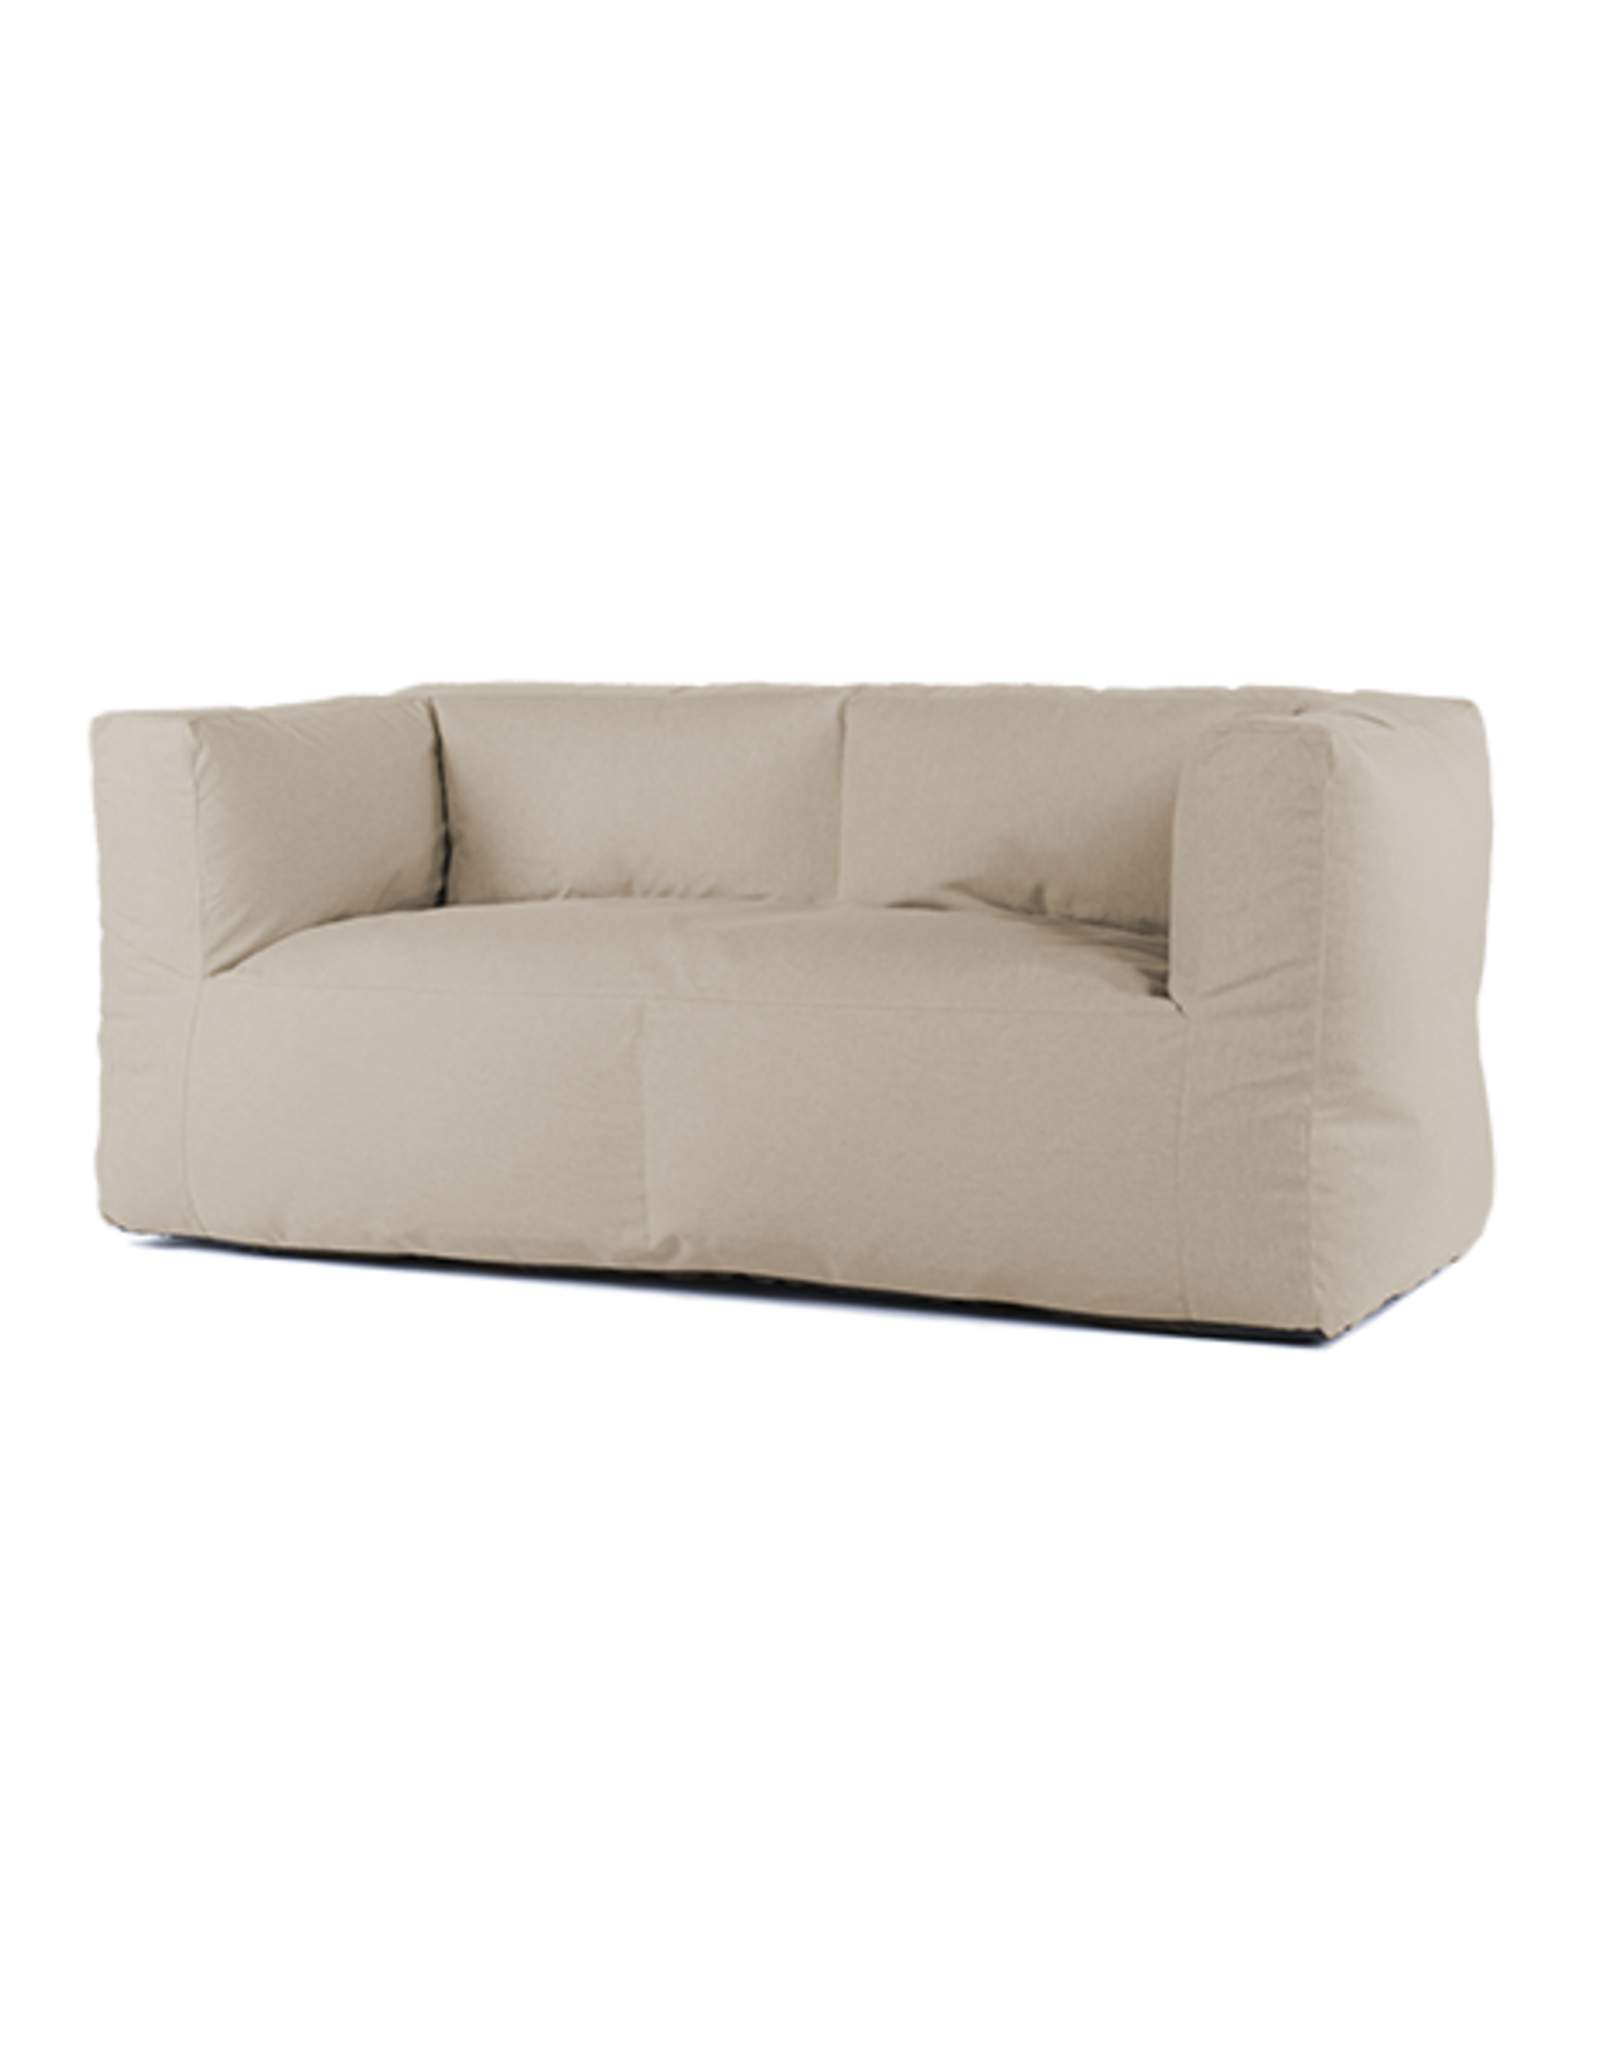 Bryck Bryck - couch 2 zit - Ecollection - Off white